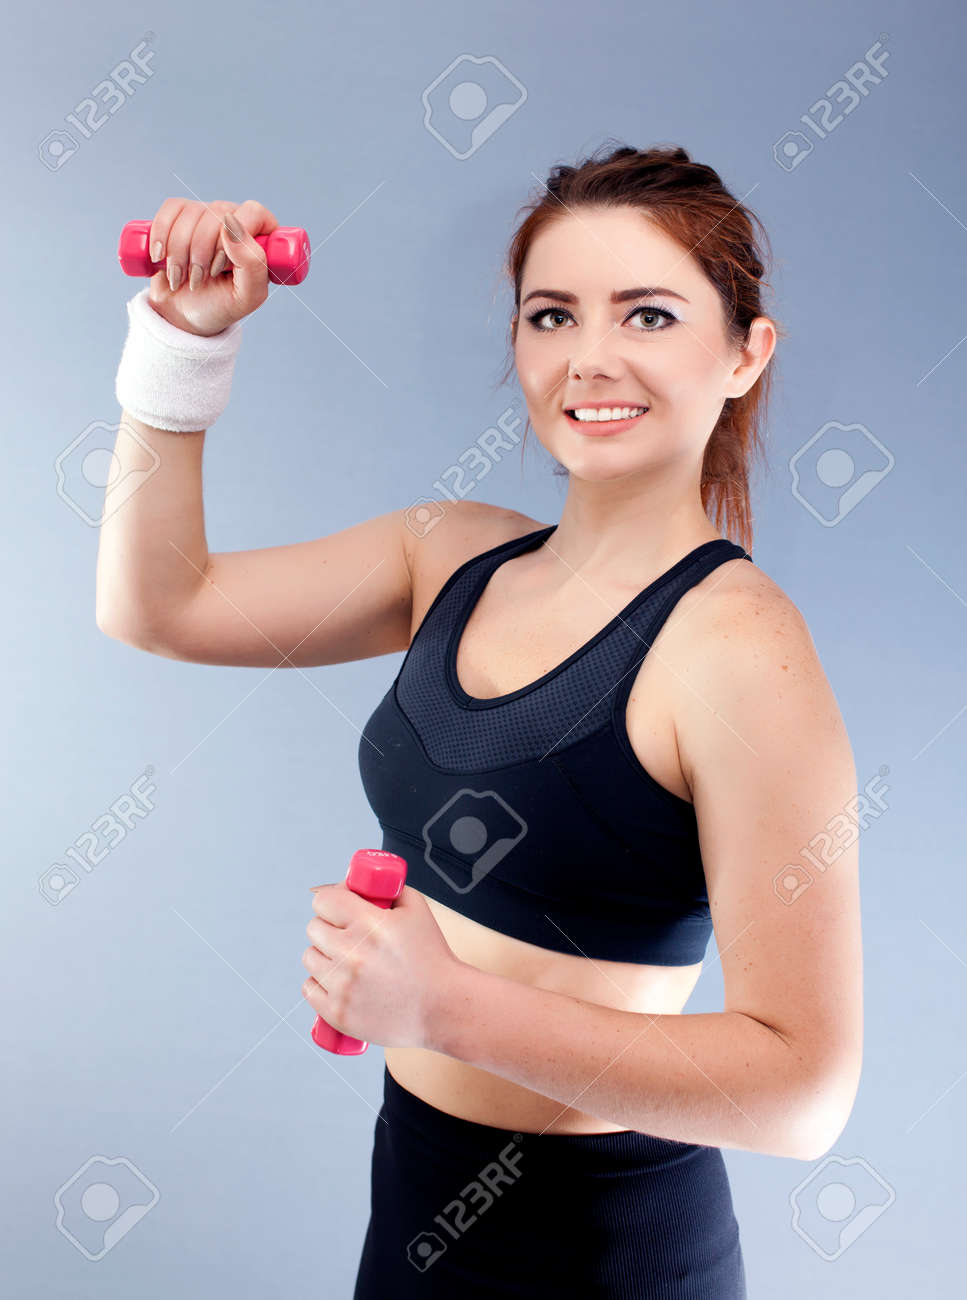 Sport woman with red dumbbells and towel smile, looking in camera. - 75276928